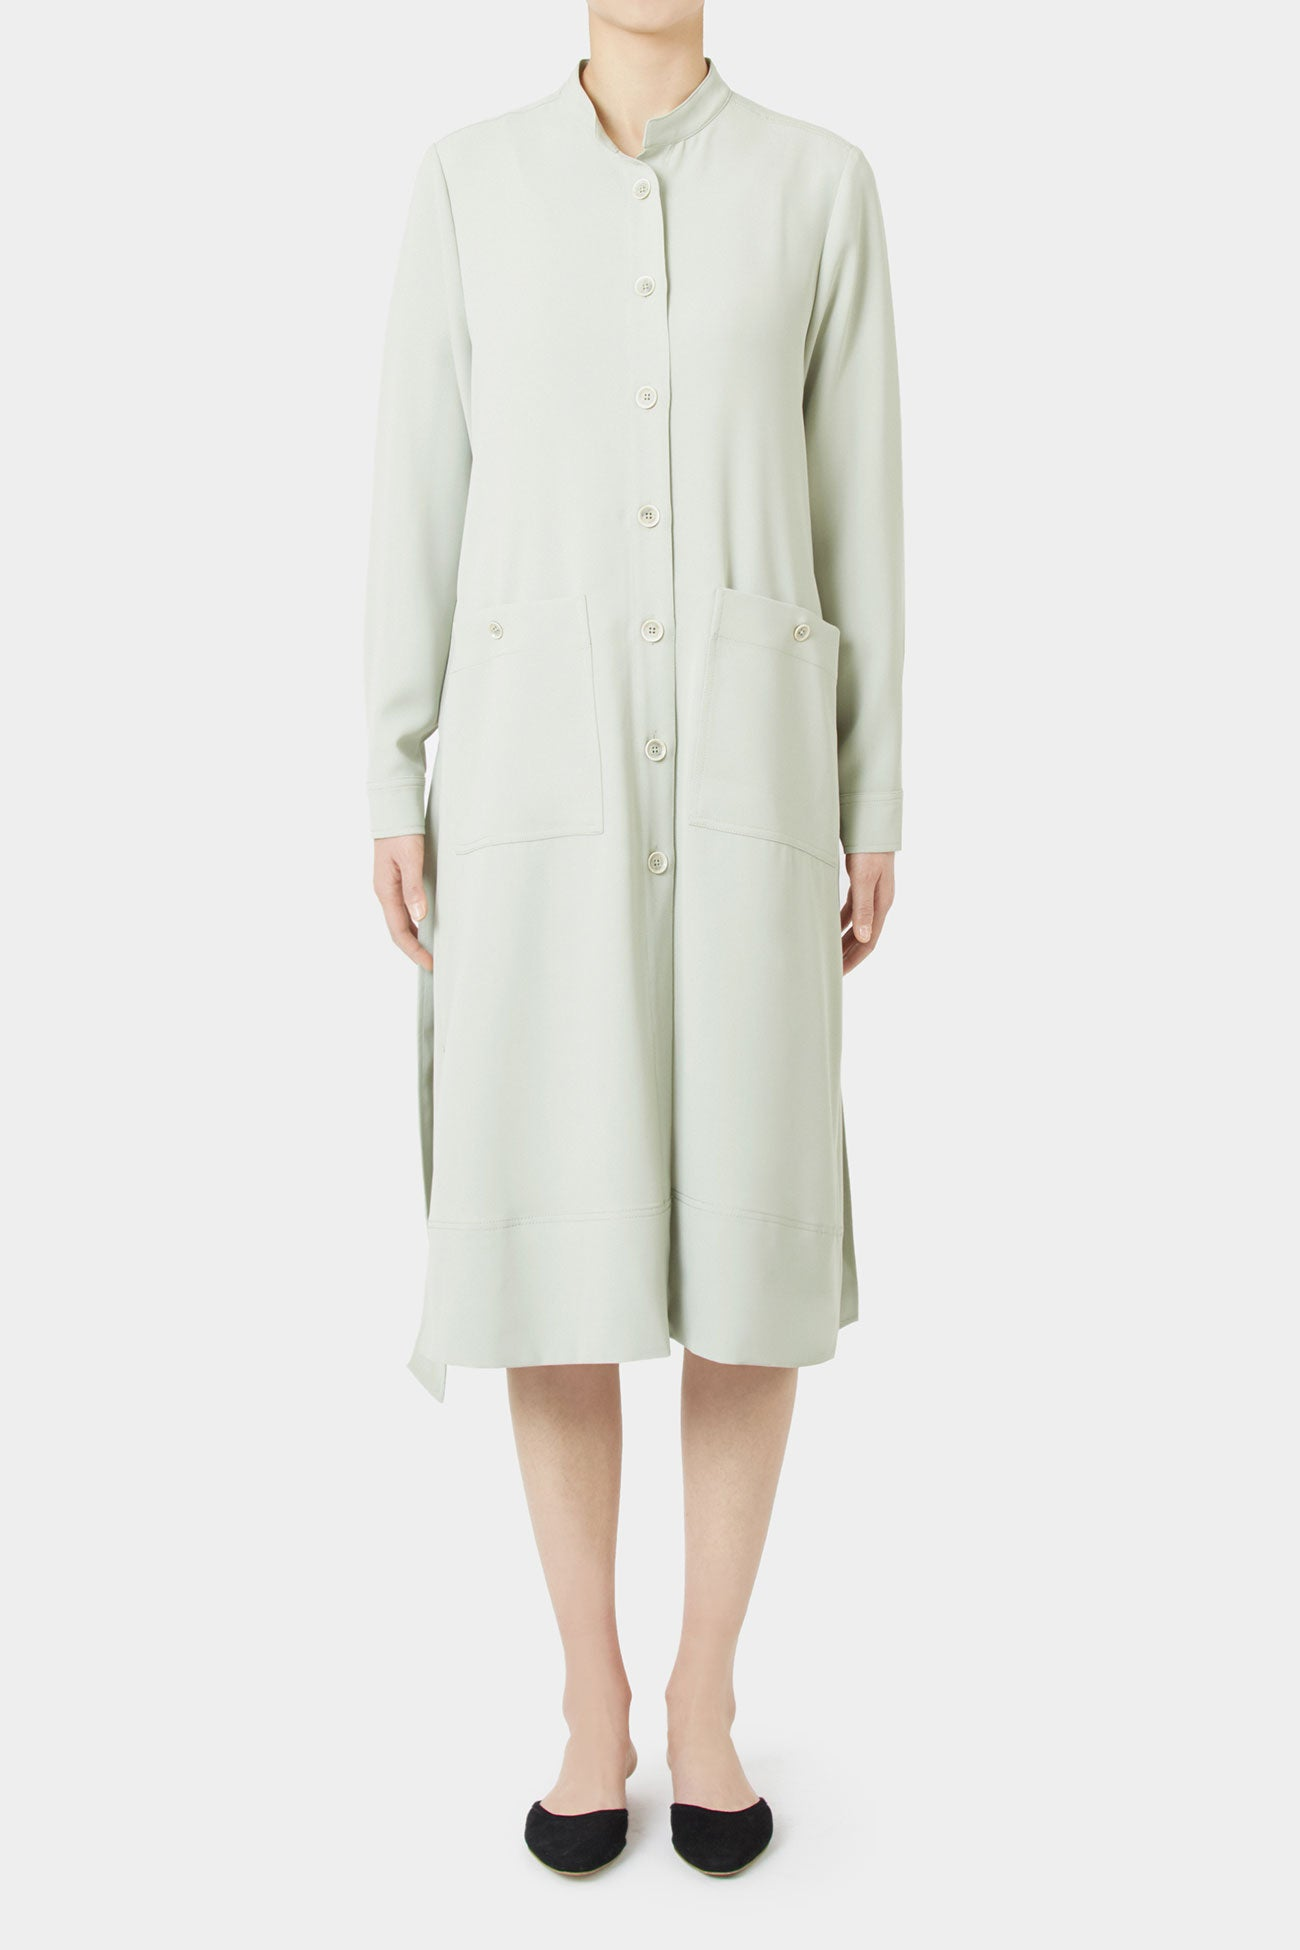 MINT RACH EASY SHIRT DRESS